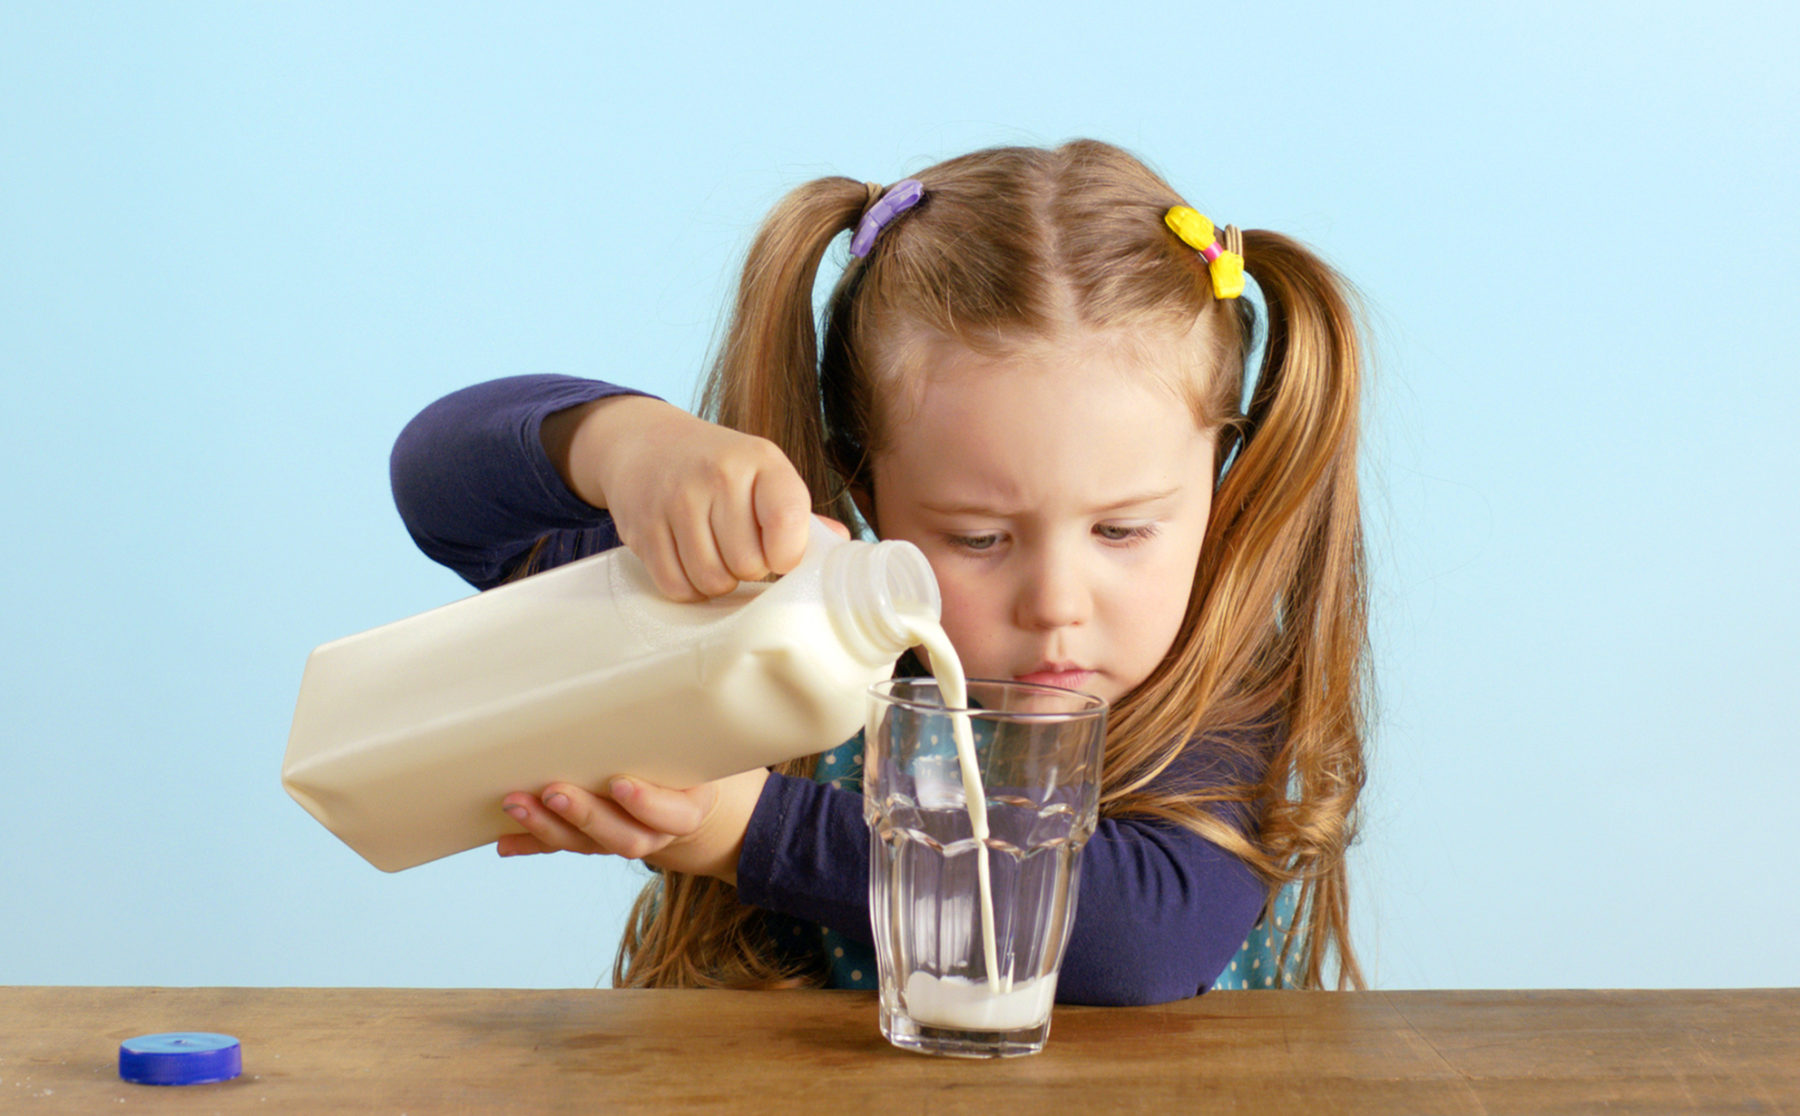 Cute child concentrating on pouring milk